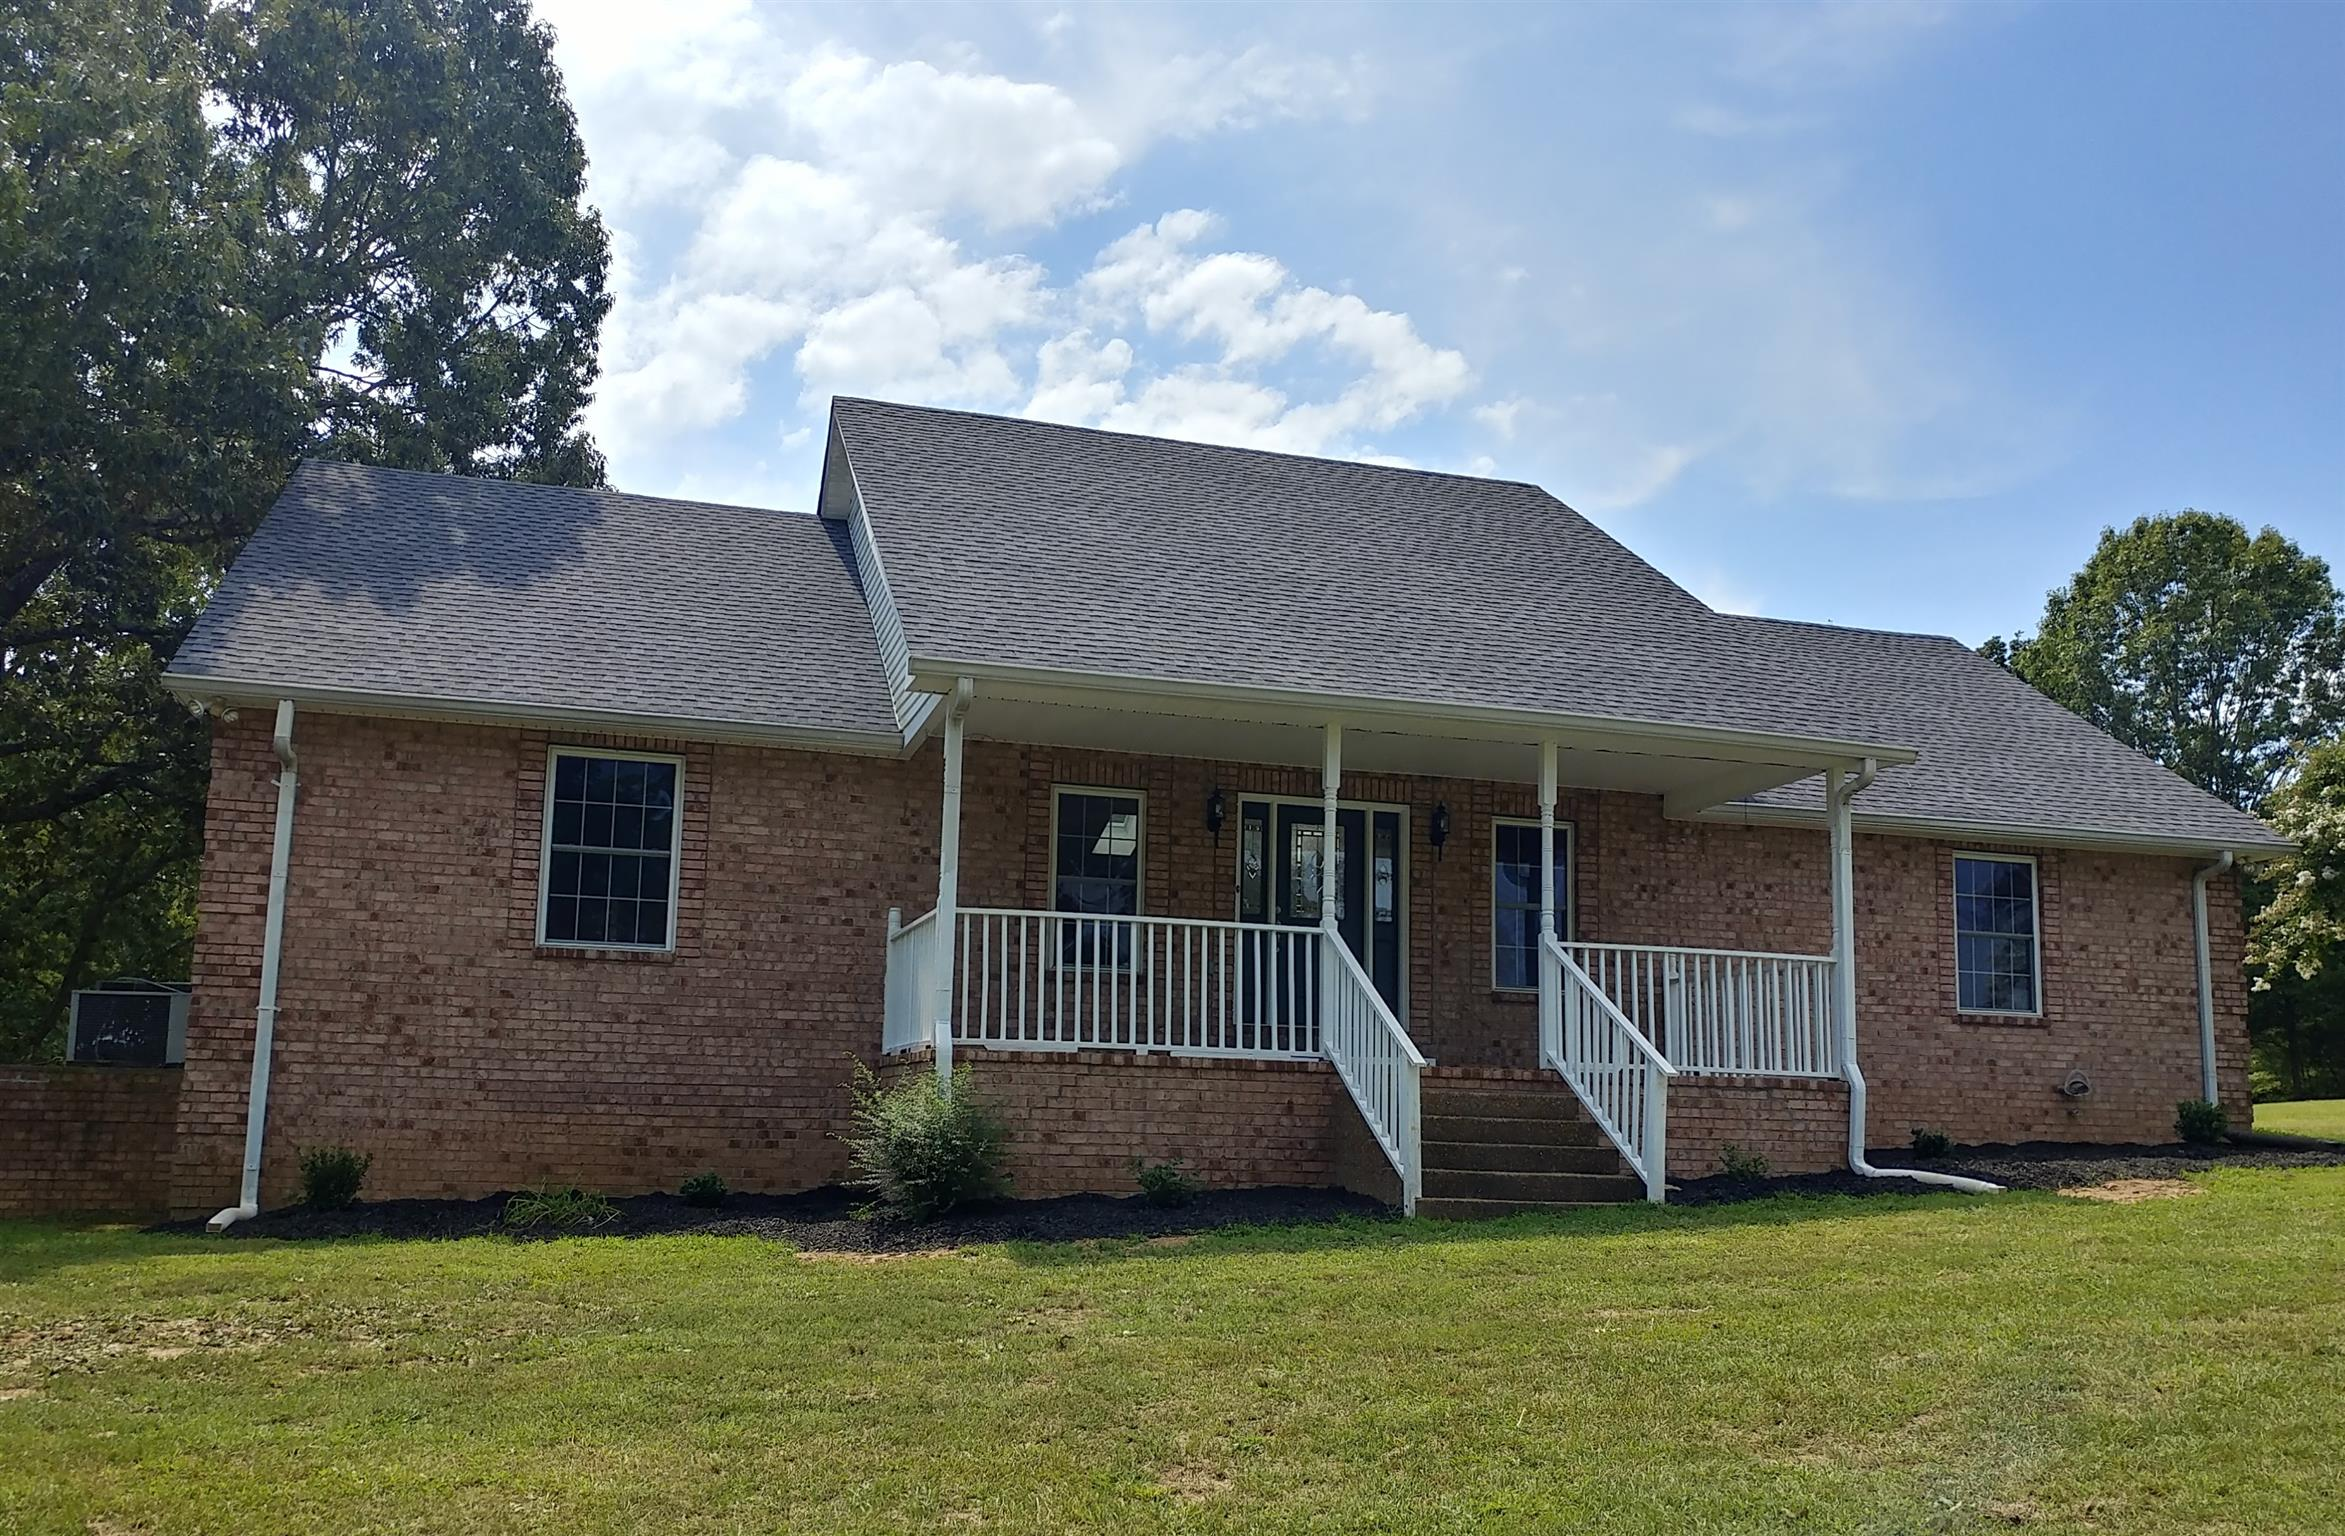 1038 Moss Bennett Rd, Ashland City, TN 37015 - Ashland City, TN real estate listing